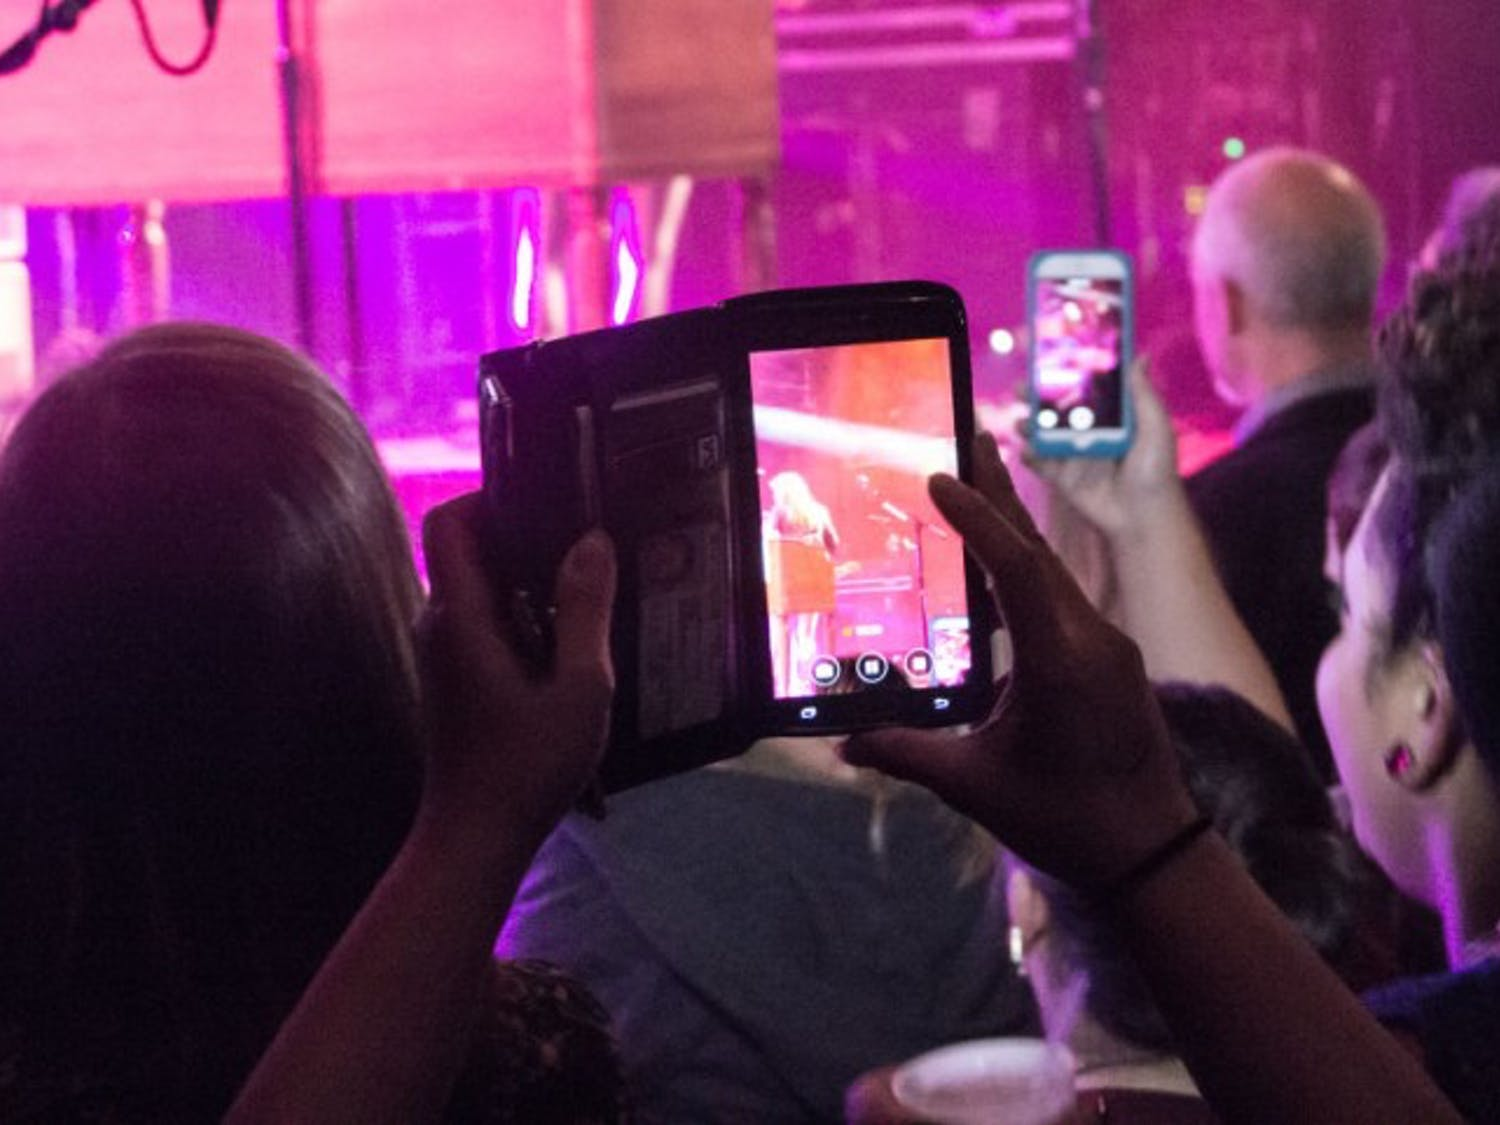 When many concertgoers whip out their phones, it becomes difficult to appreciate the show.